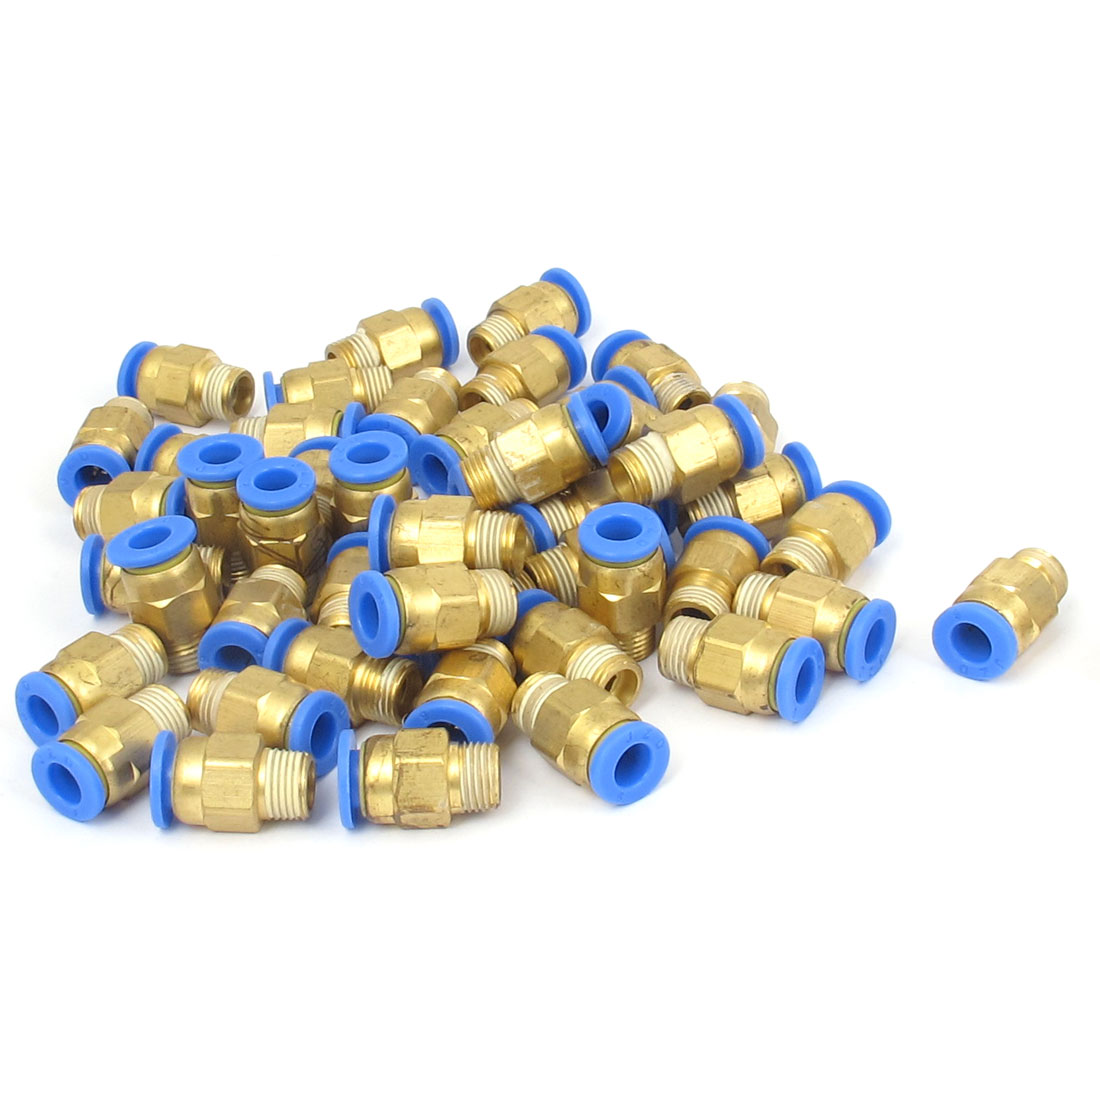 50 Pcs 1/8BSP Male Threaded 6mm Push in Joint Pneumatic Connector Quick Fittings